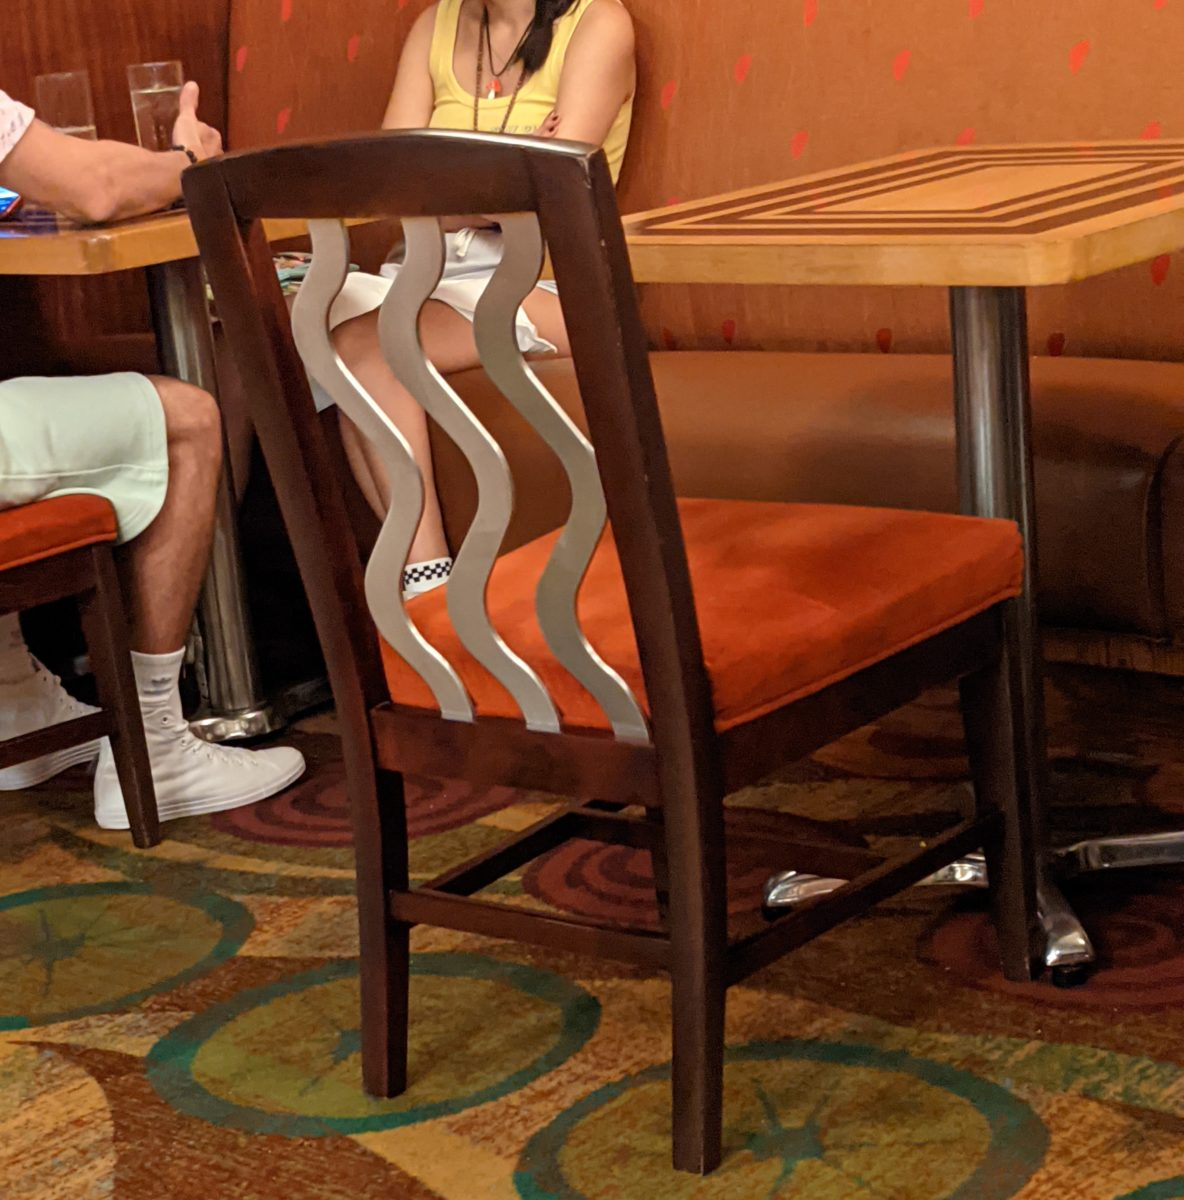 A picture of the chairs at Waves of American Flavor a restaurant at Disney's Contemporary Resort in Orlando